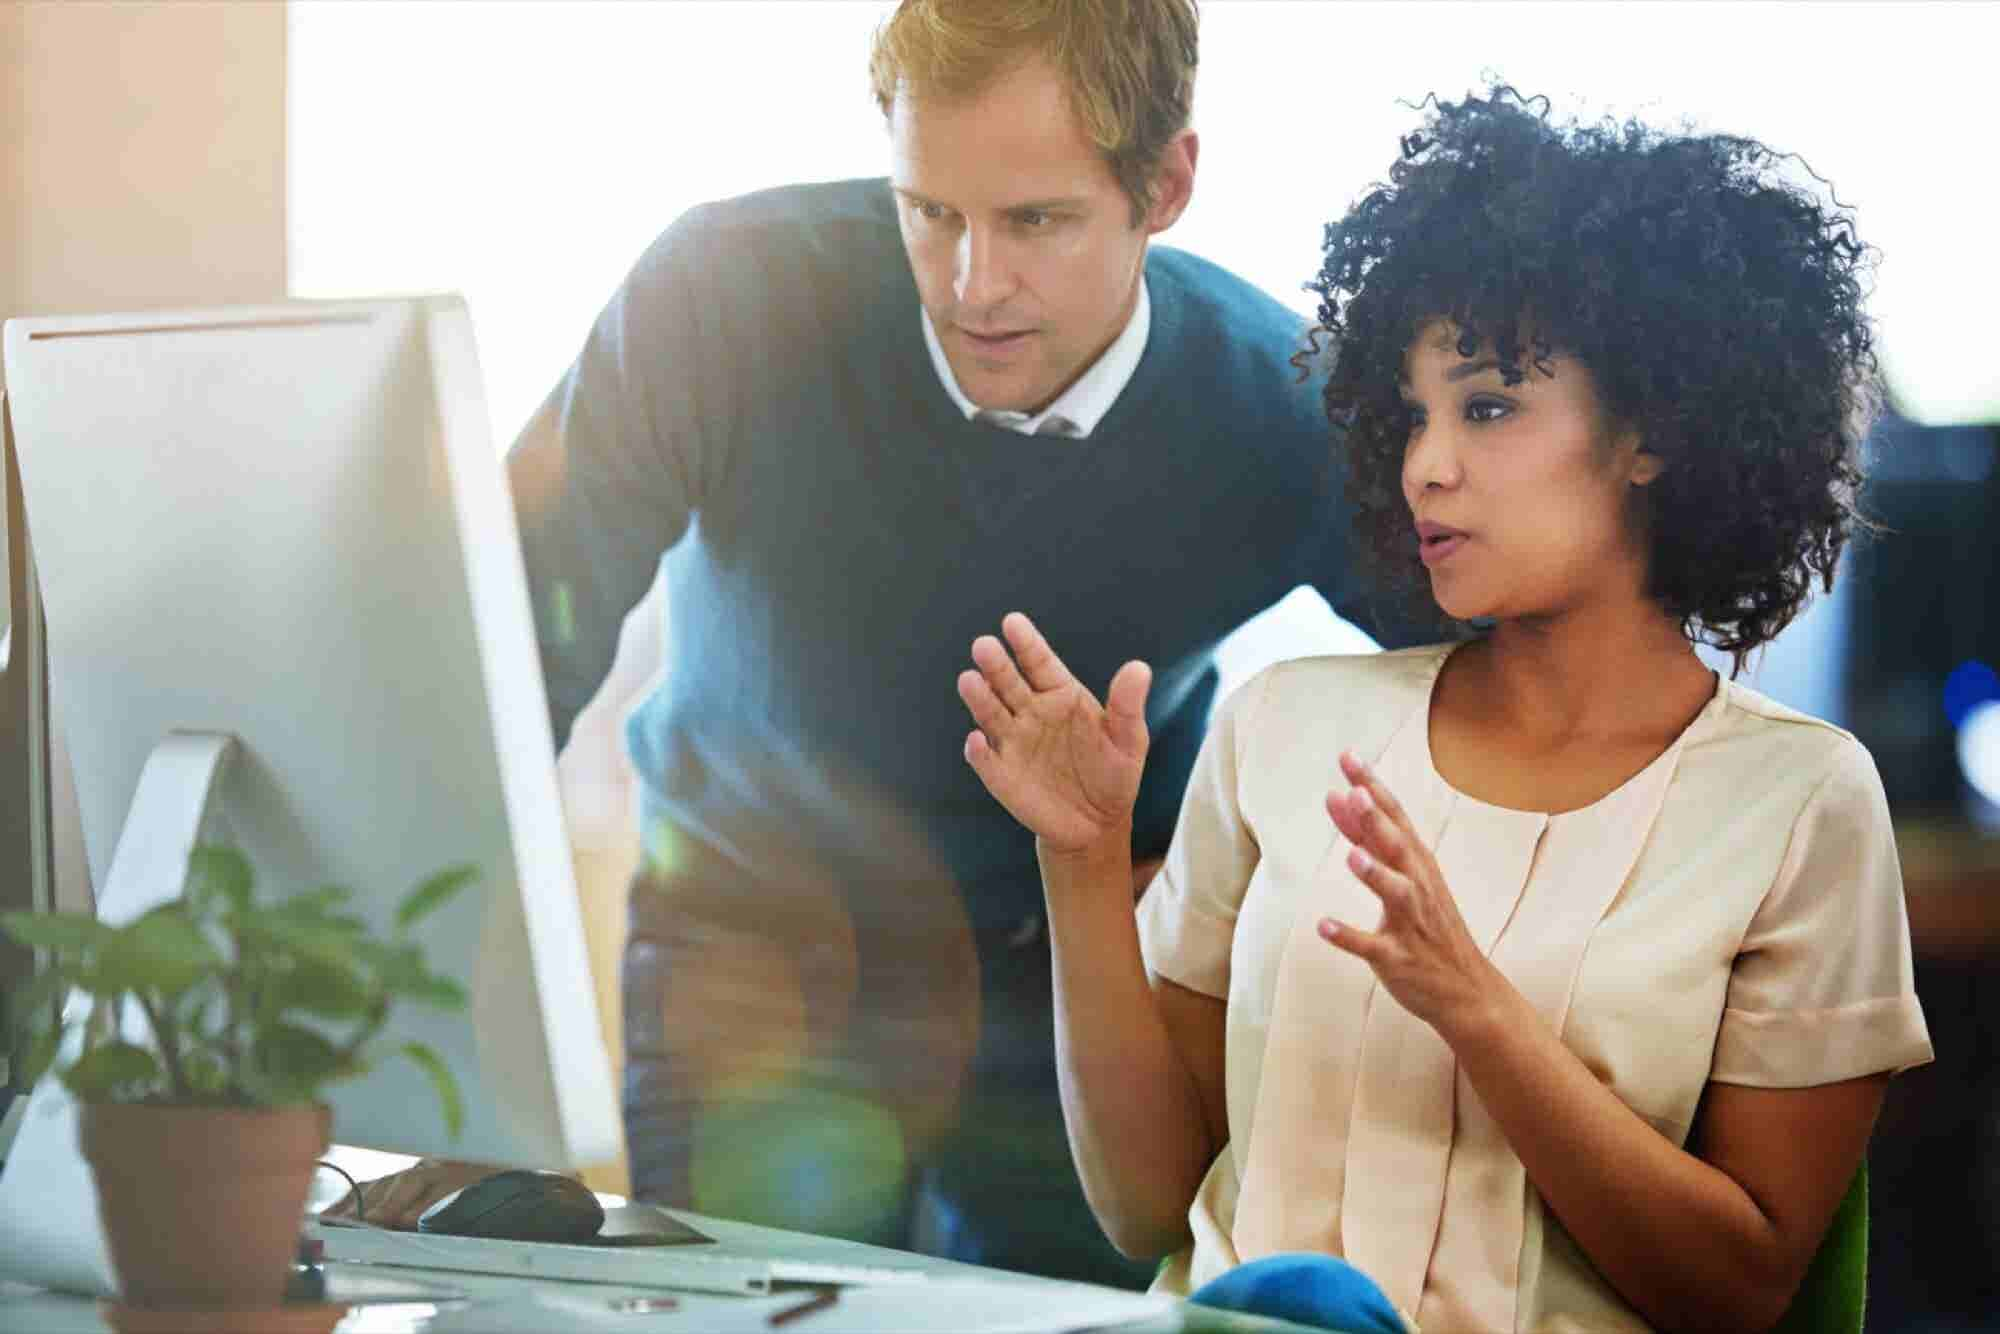 4 Ways Leaders Can Get More by Giving More